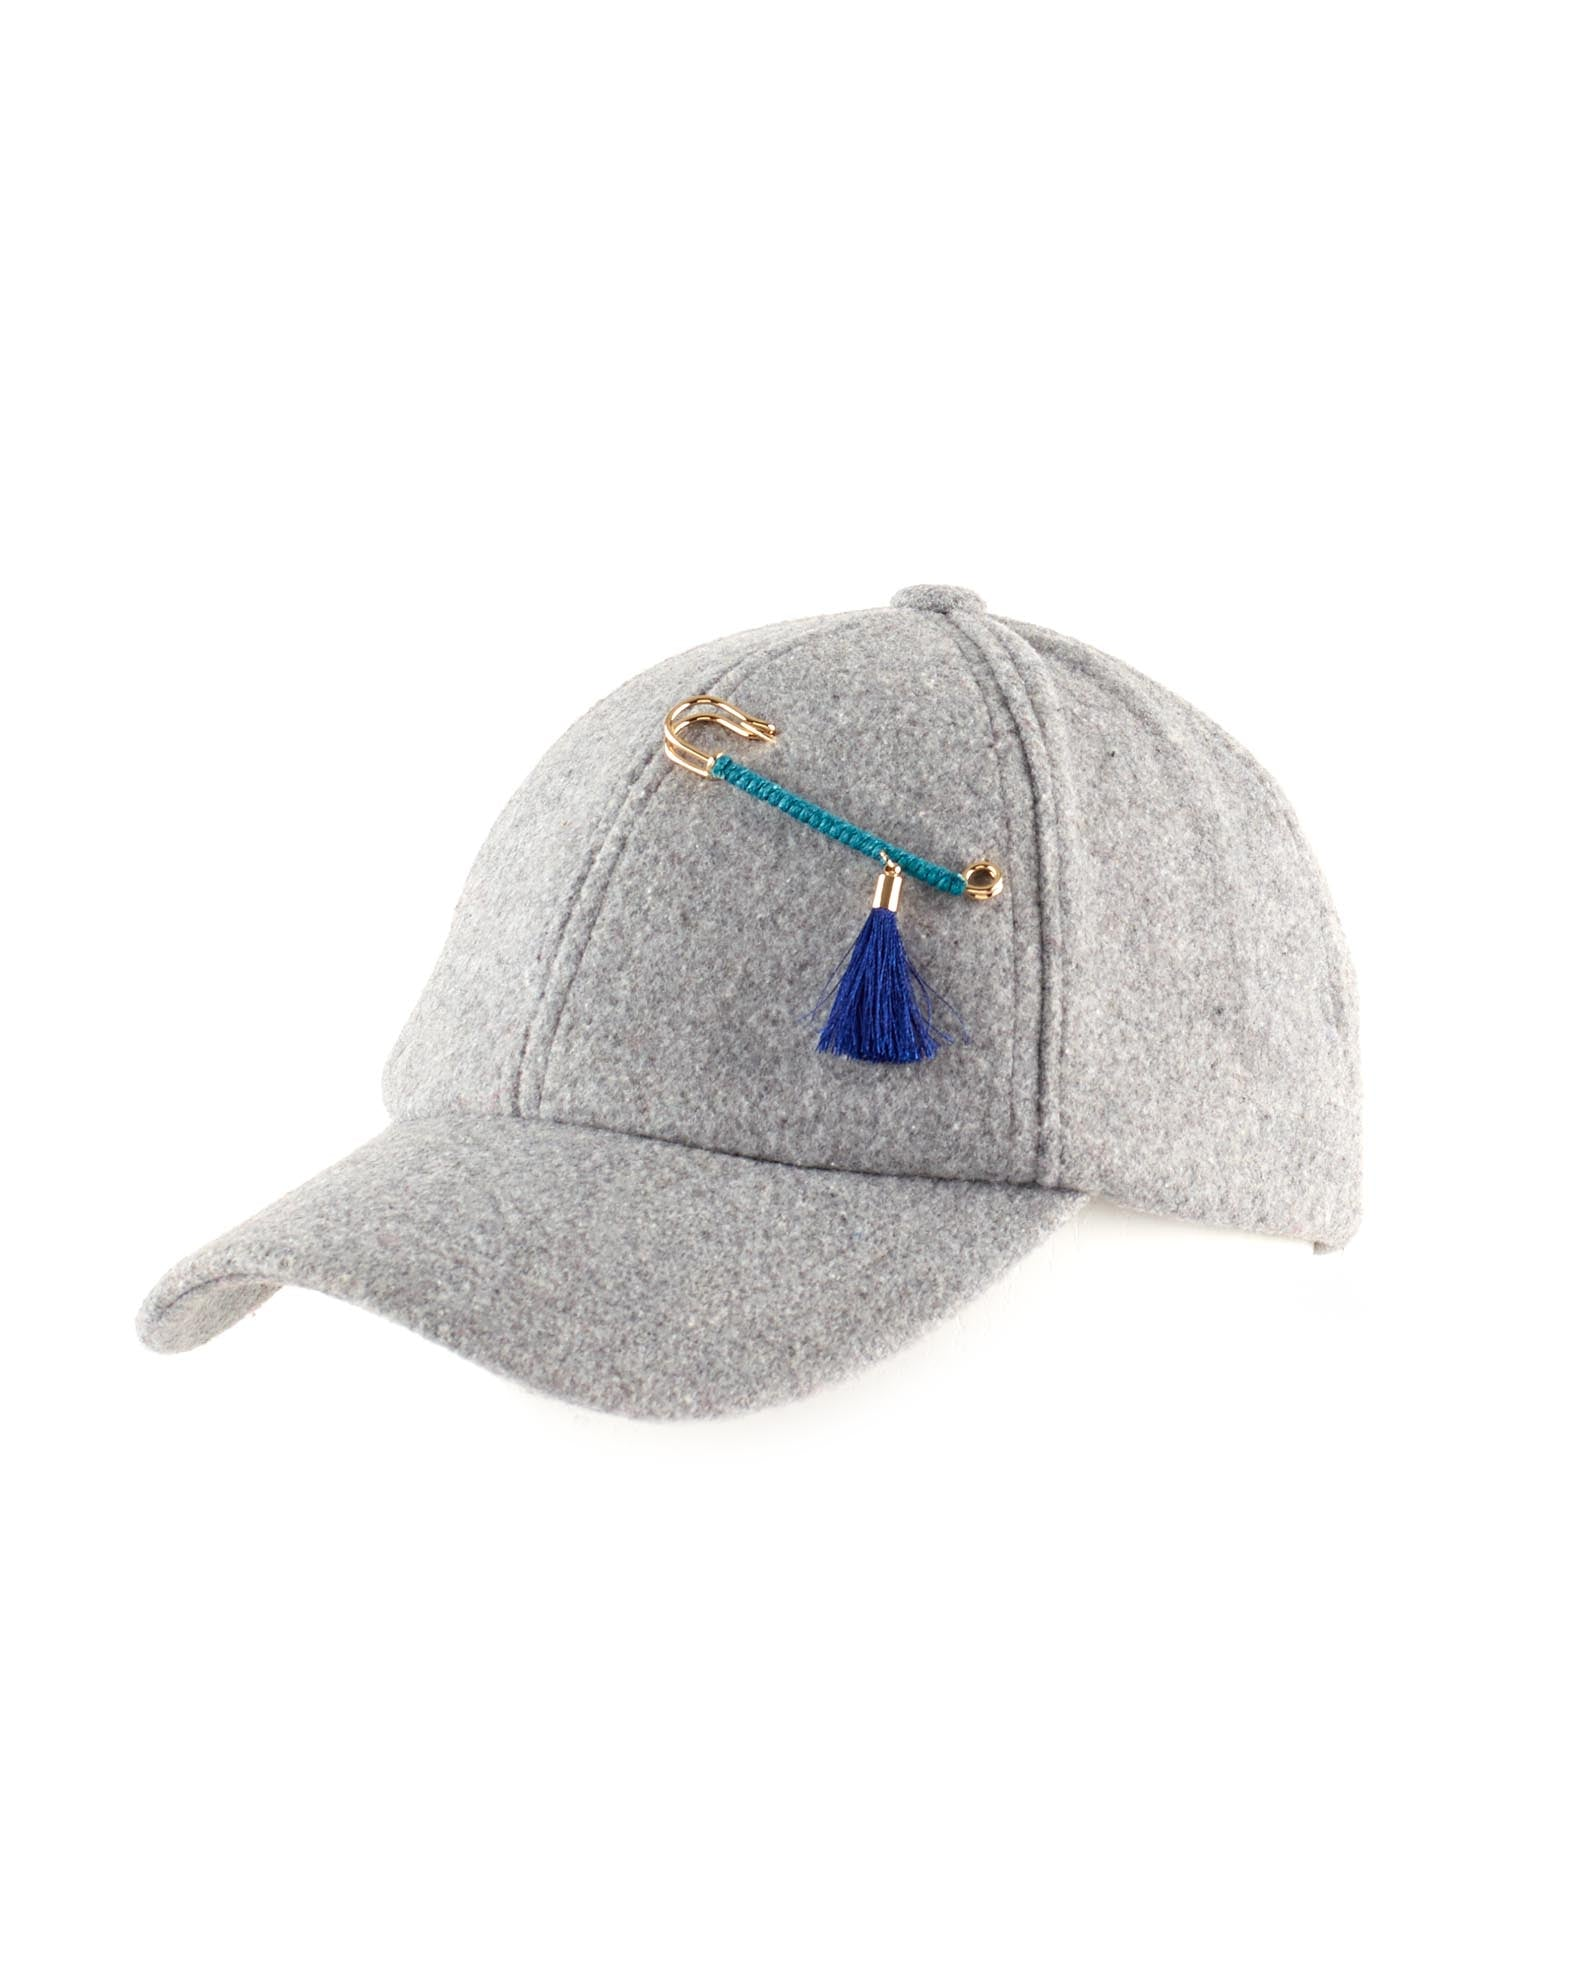 Summit Grey - Solid Baseball Hat